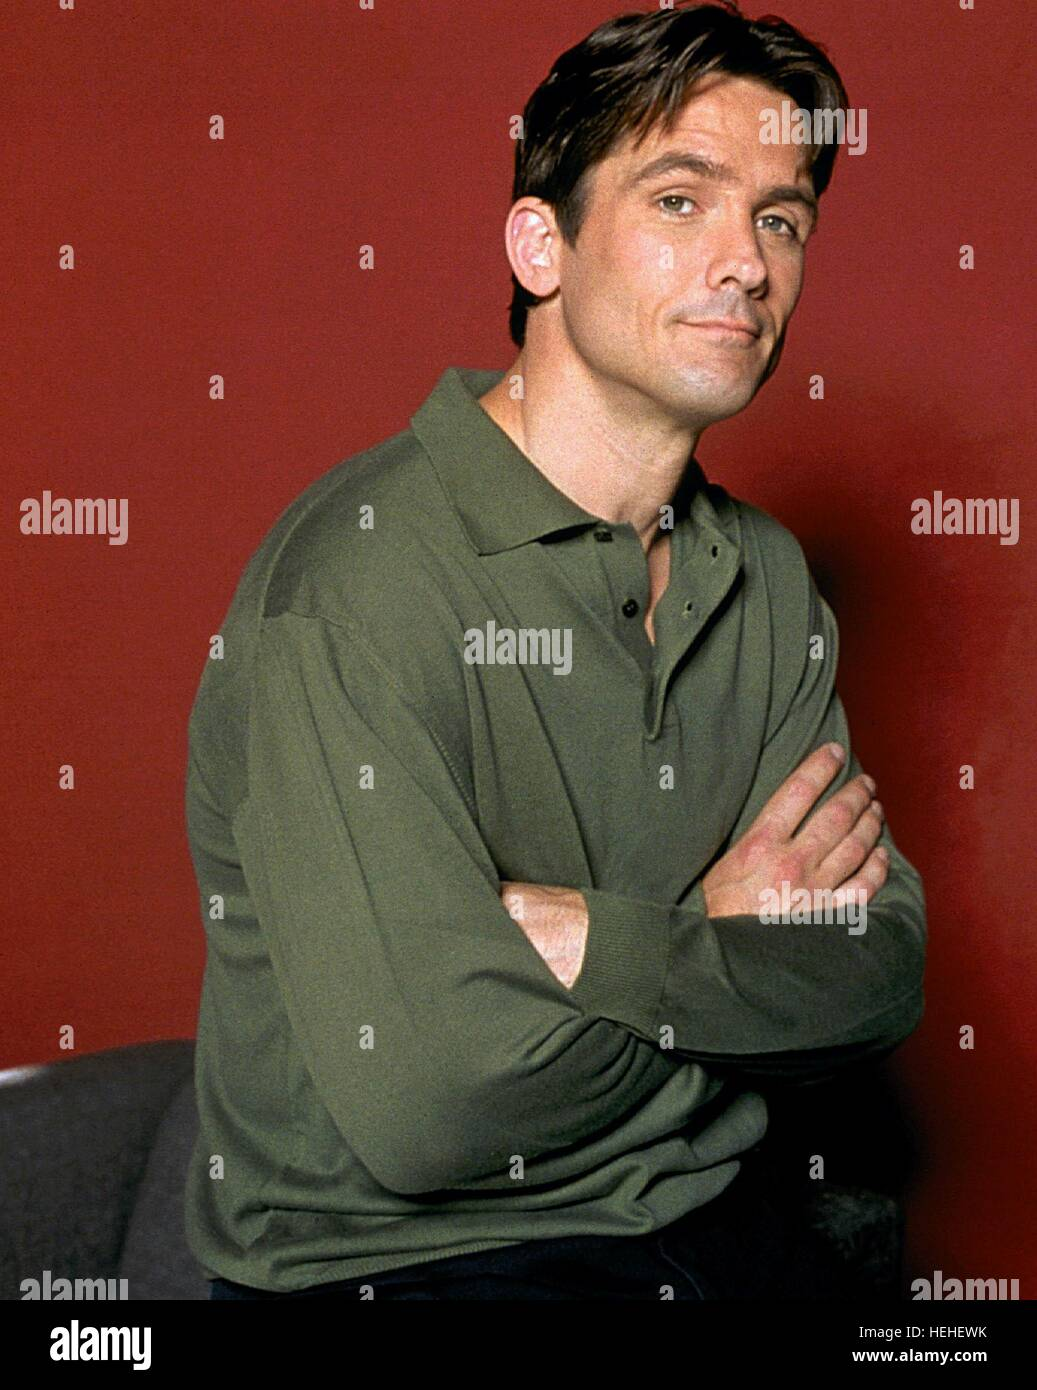 BILLY CAMPBELL ACTOR (1999) - Stock Image